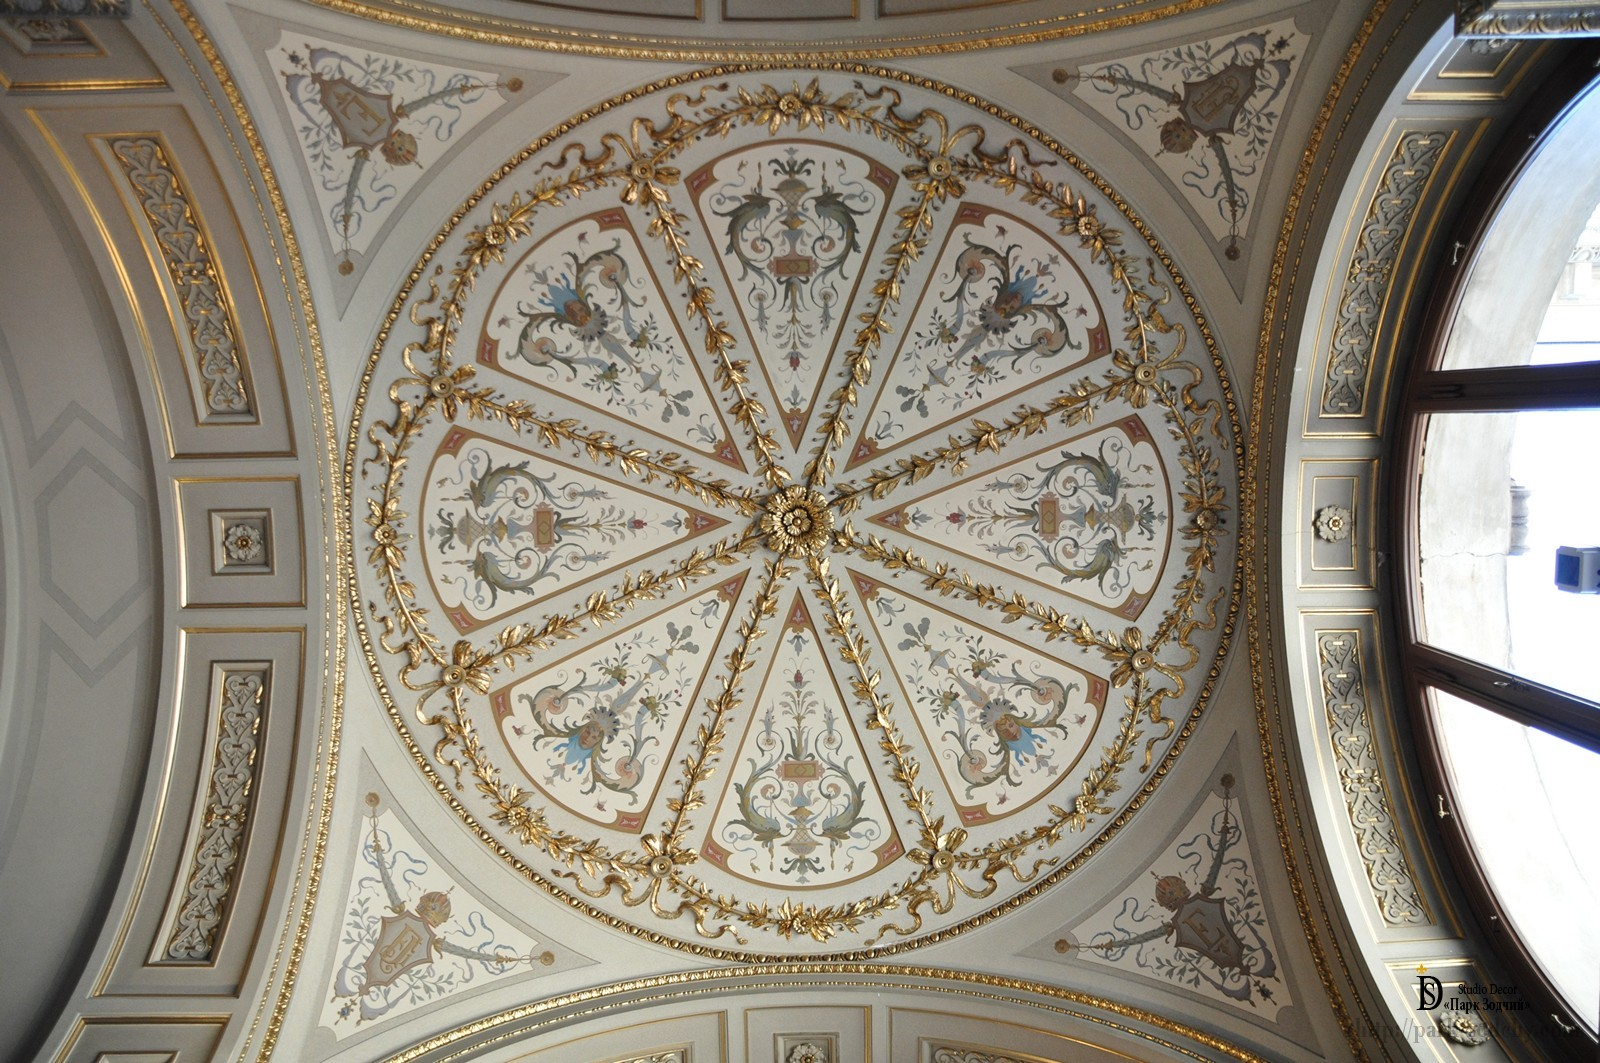 The painting on the ceiling in the classical style